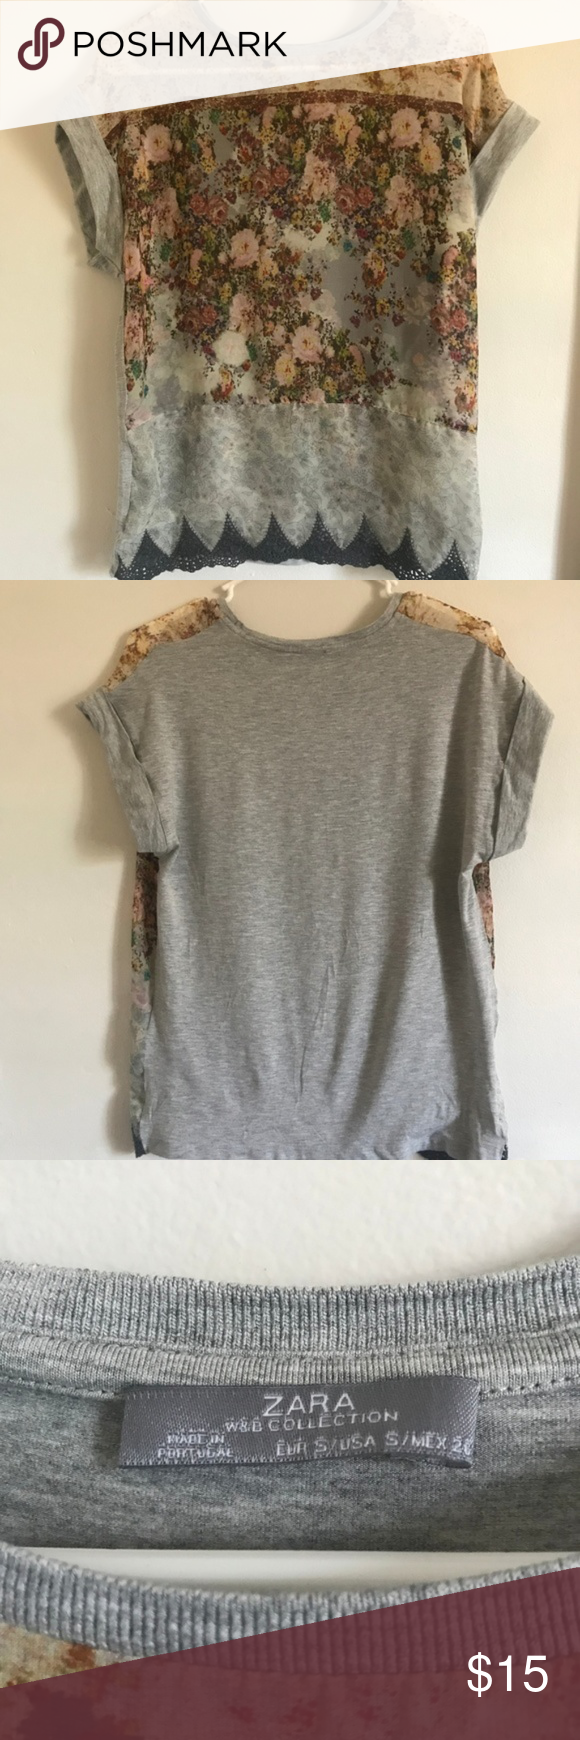 Zara Mixed Media Fabric TShirt Top Blouse Zara WM Collection Mixed Media Fabr